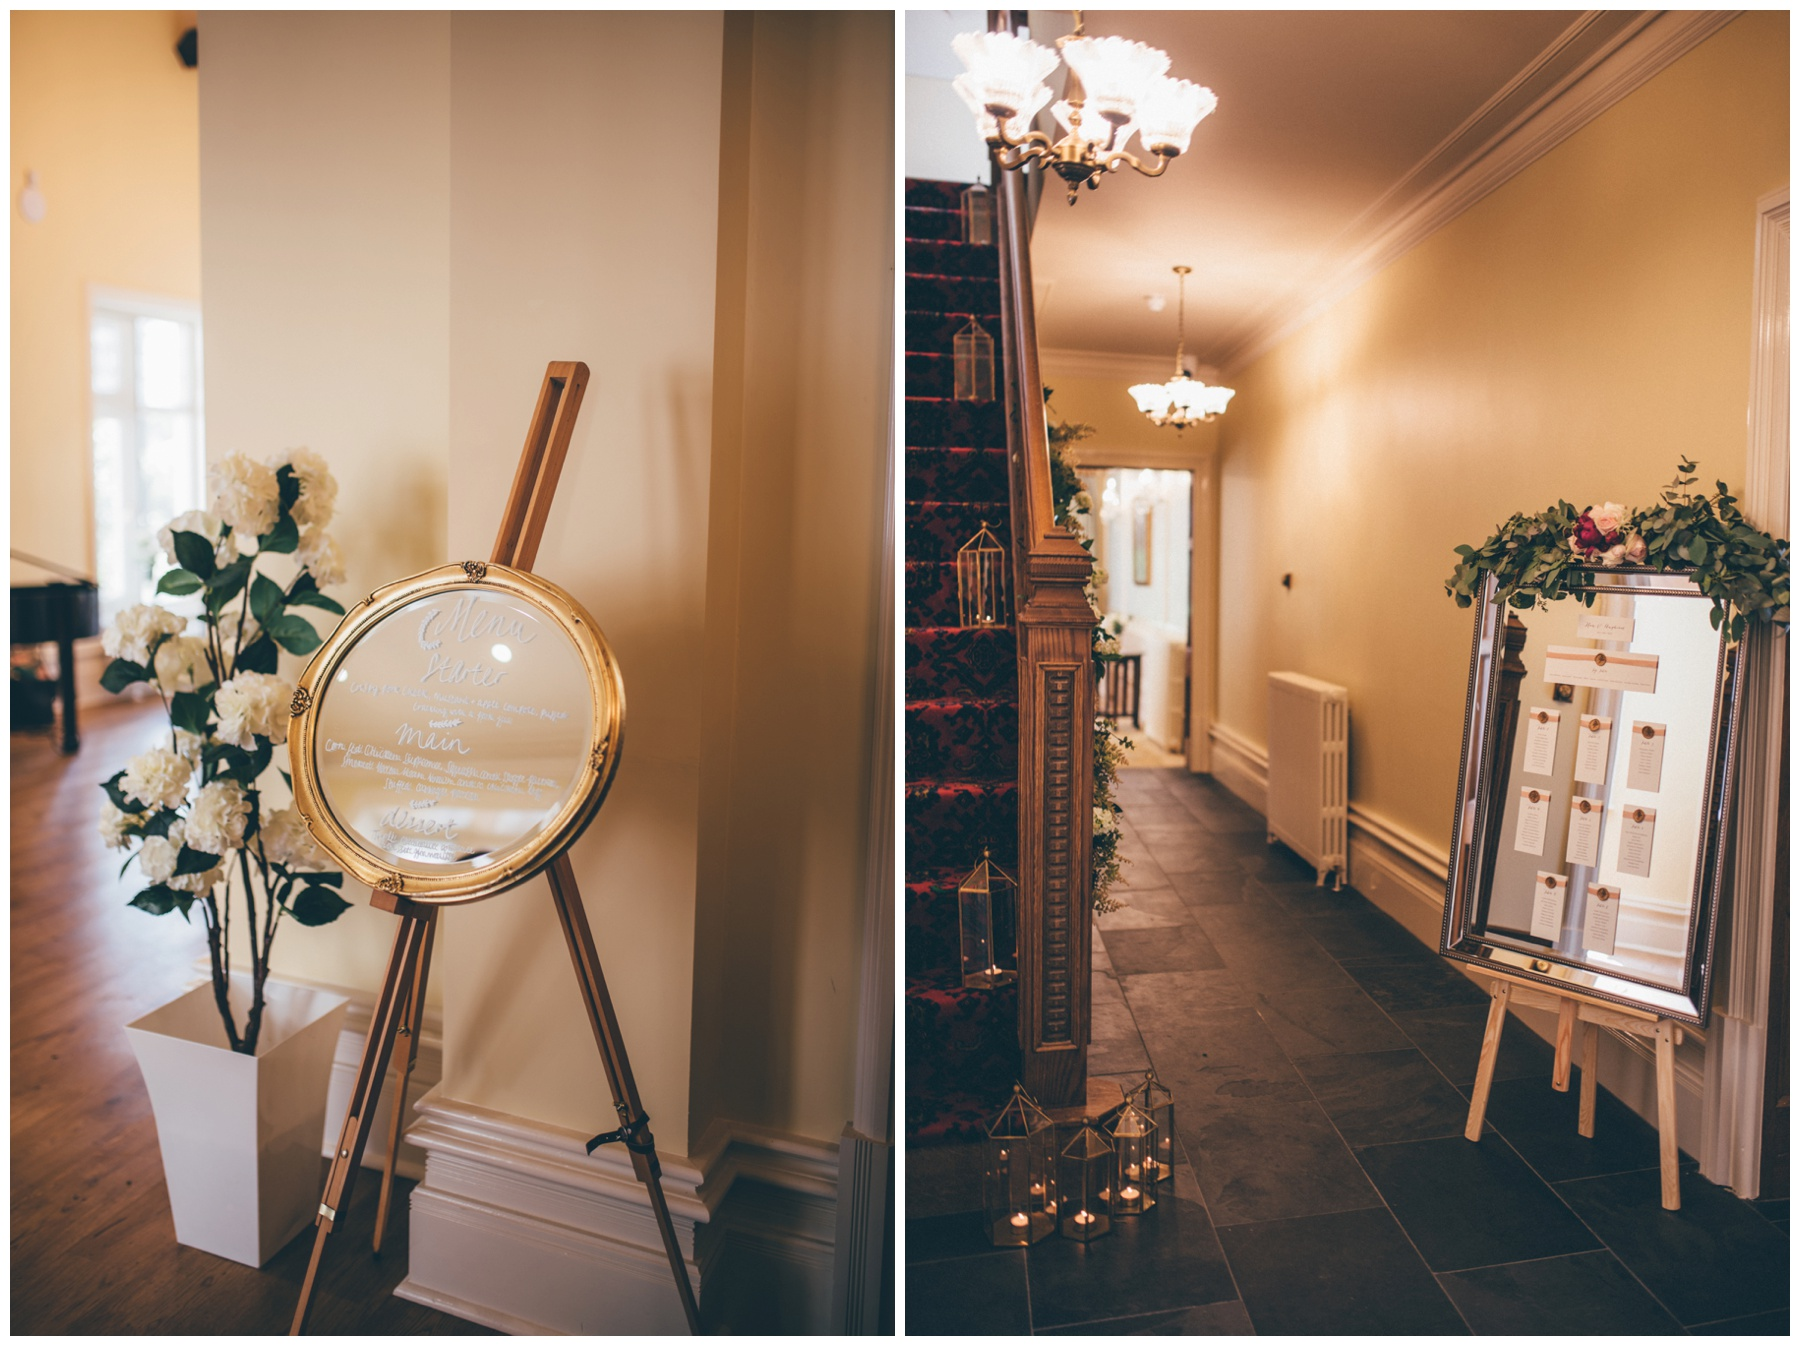 Tilstone House details for the spring time wedding.